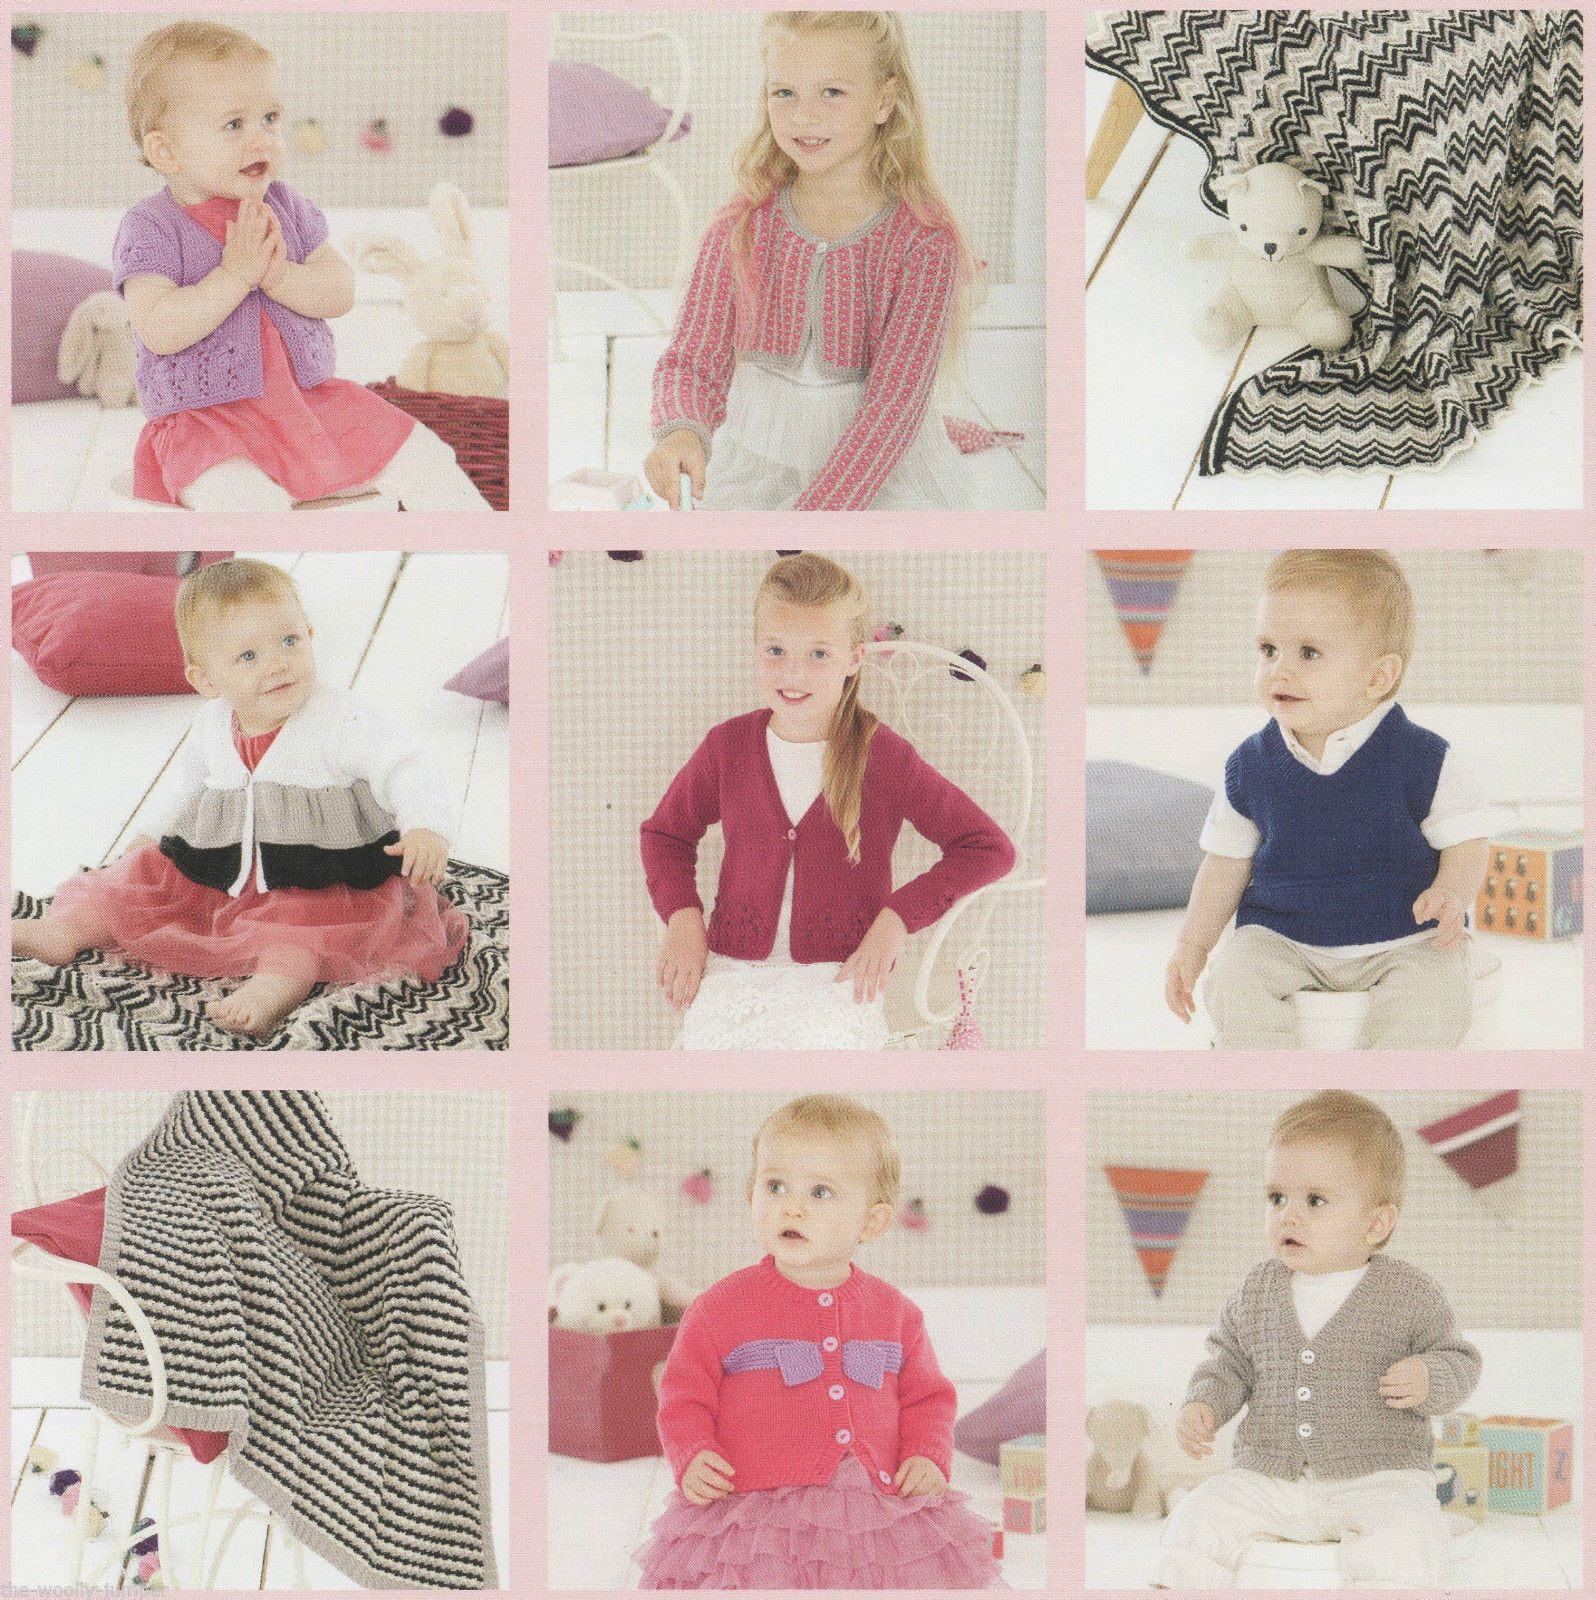 497 Sirdar Snuggly Dk Little Party Knits Knitting Pattern Booklet To Fit 0